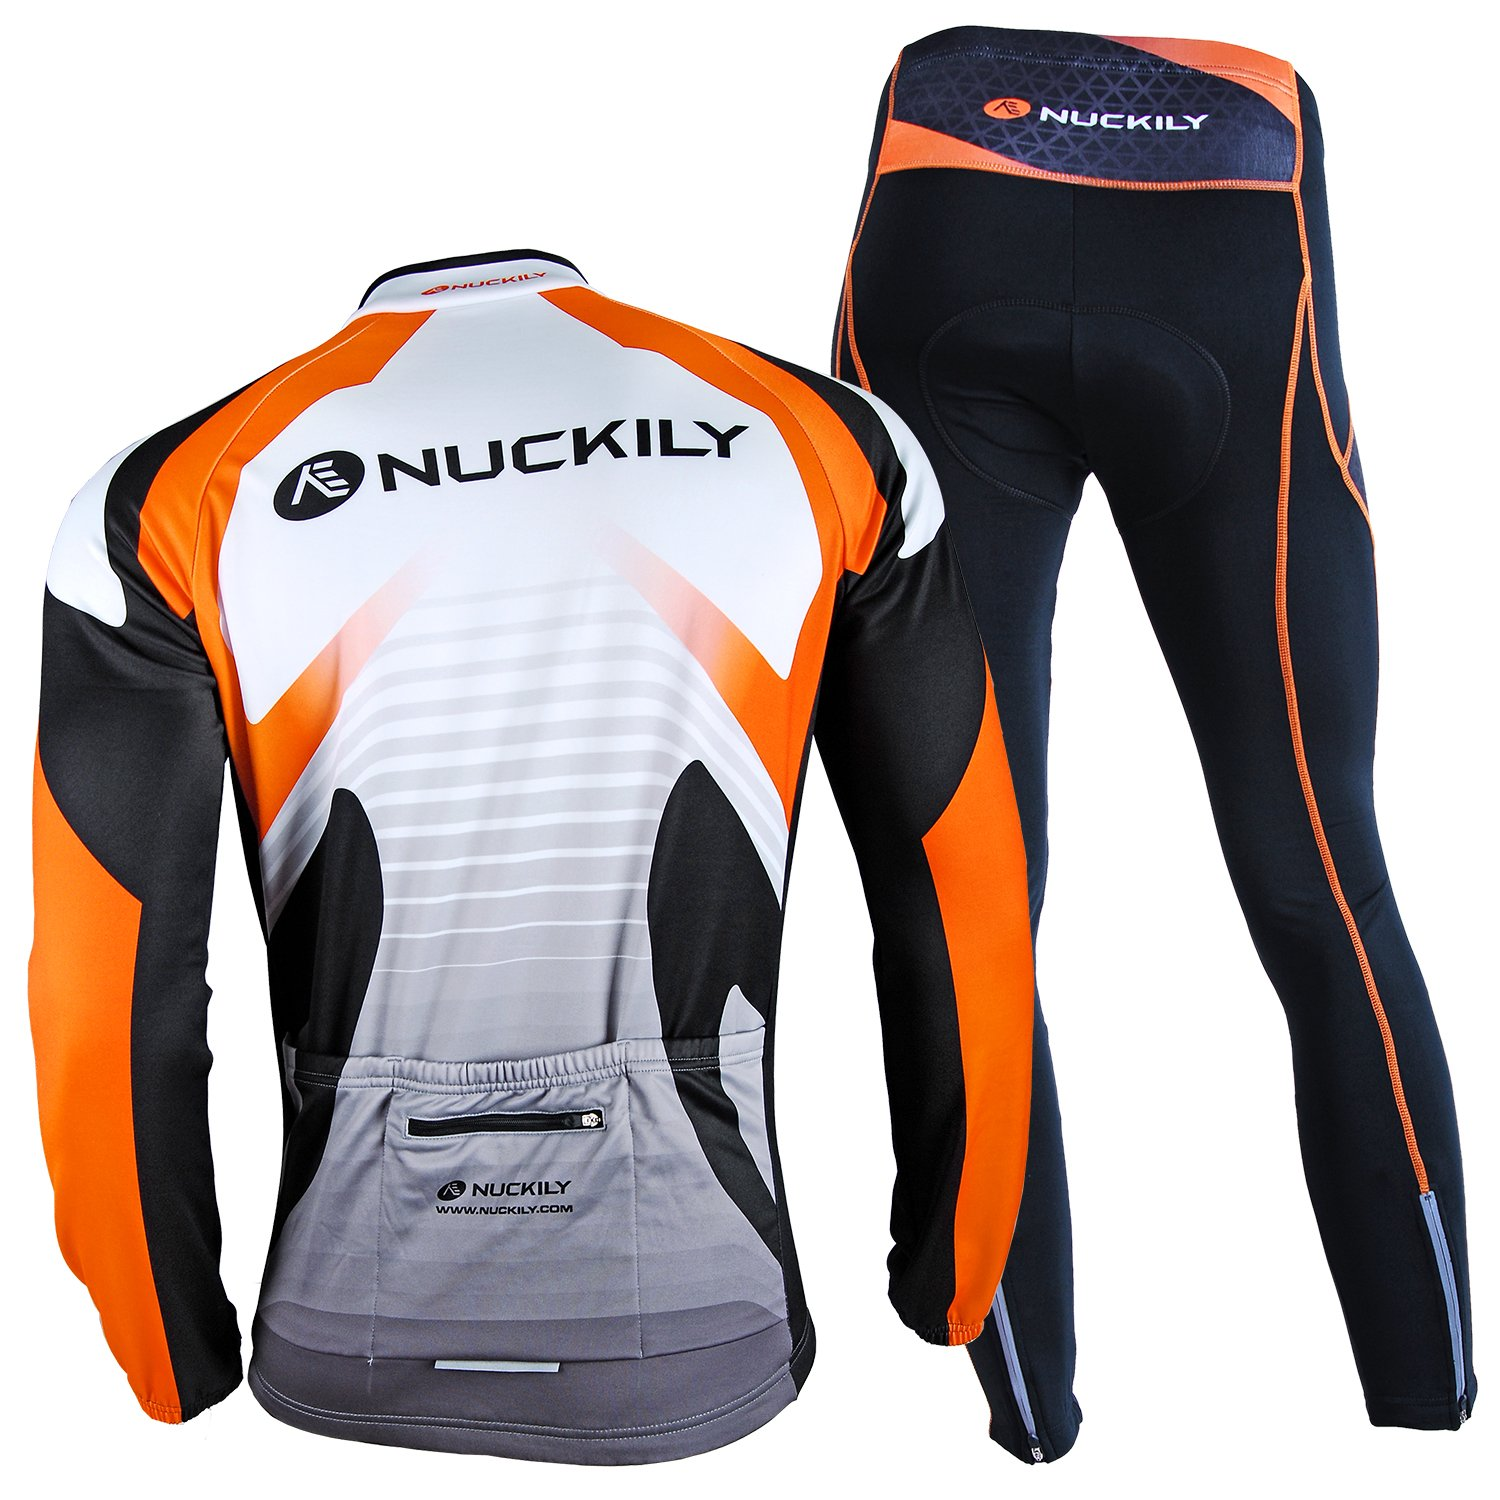 9aedeed6e Amazon.com   NUCKILY Men s Bicycle Jersey Set Long Sleeve Fleece Cycling  Jersey with Pants Suit for Winter   Sports   Outdoors